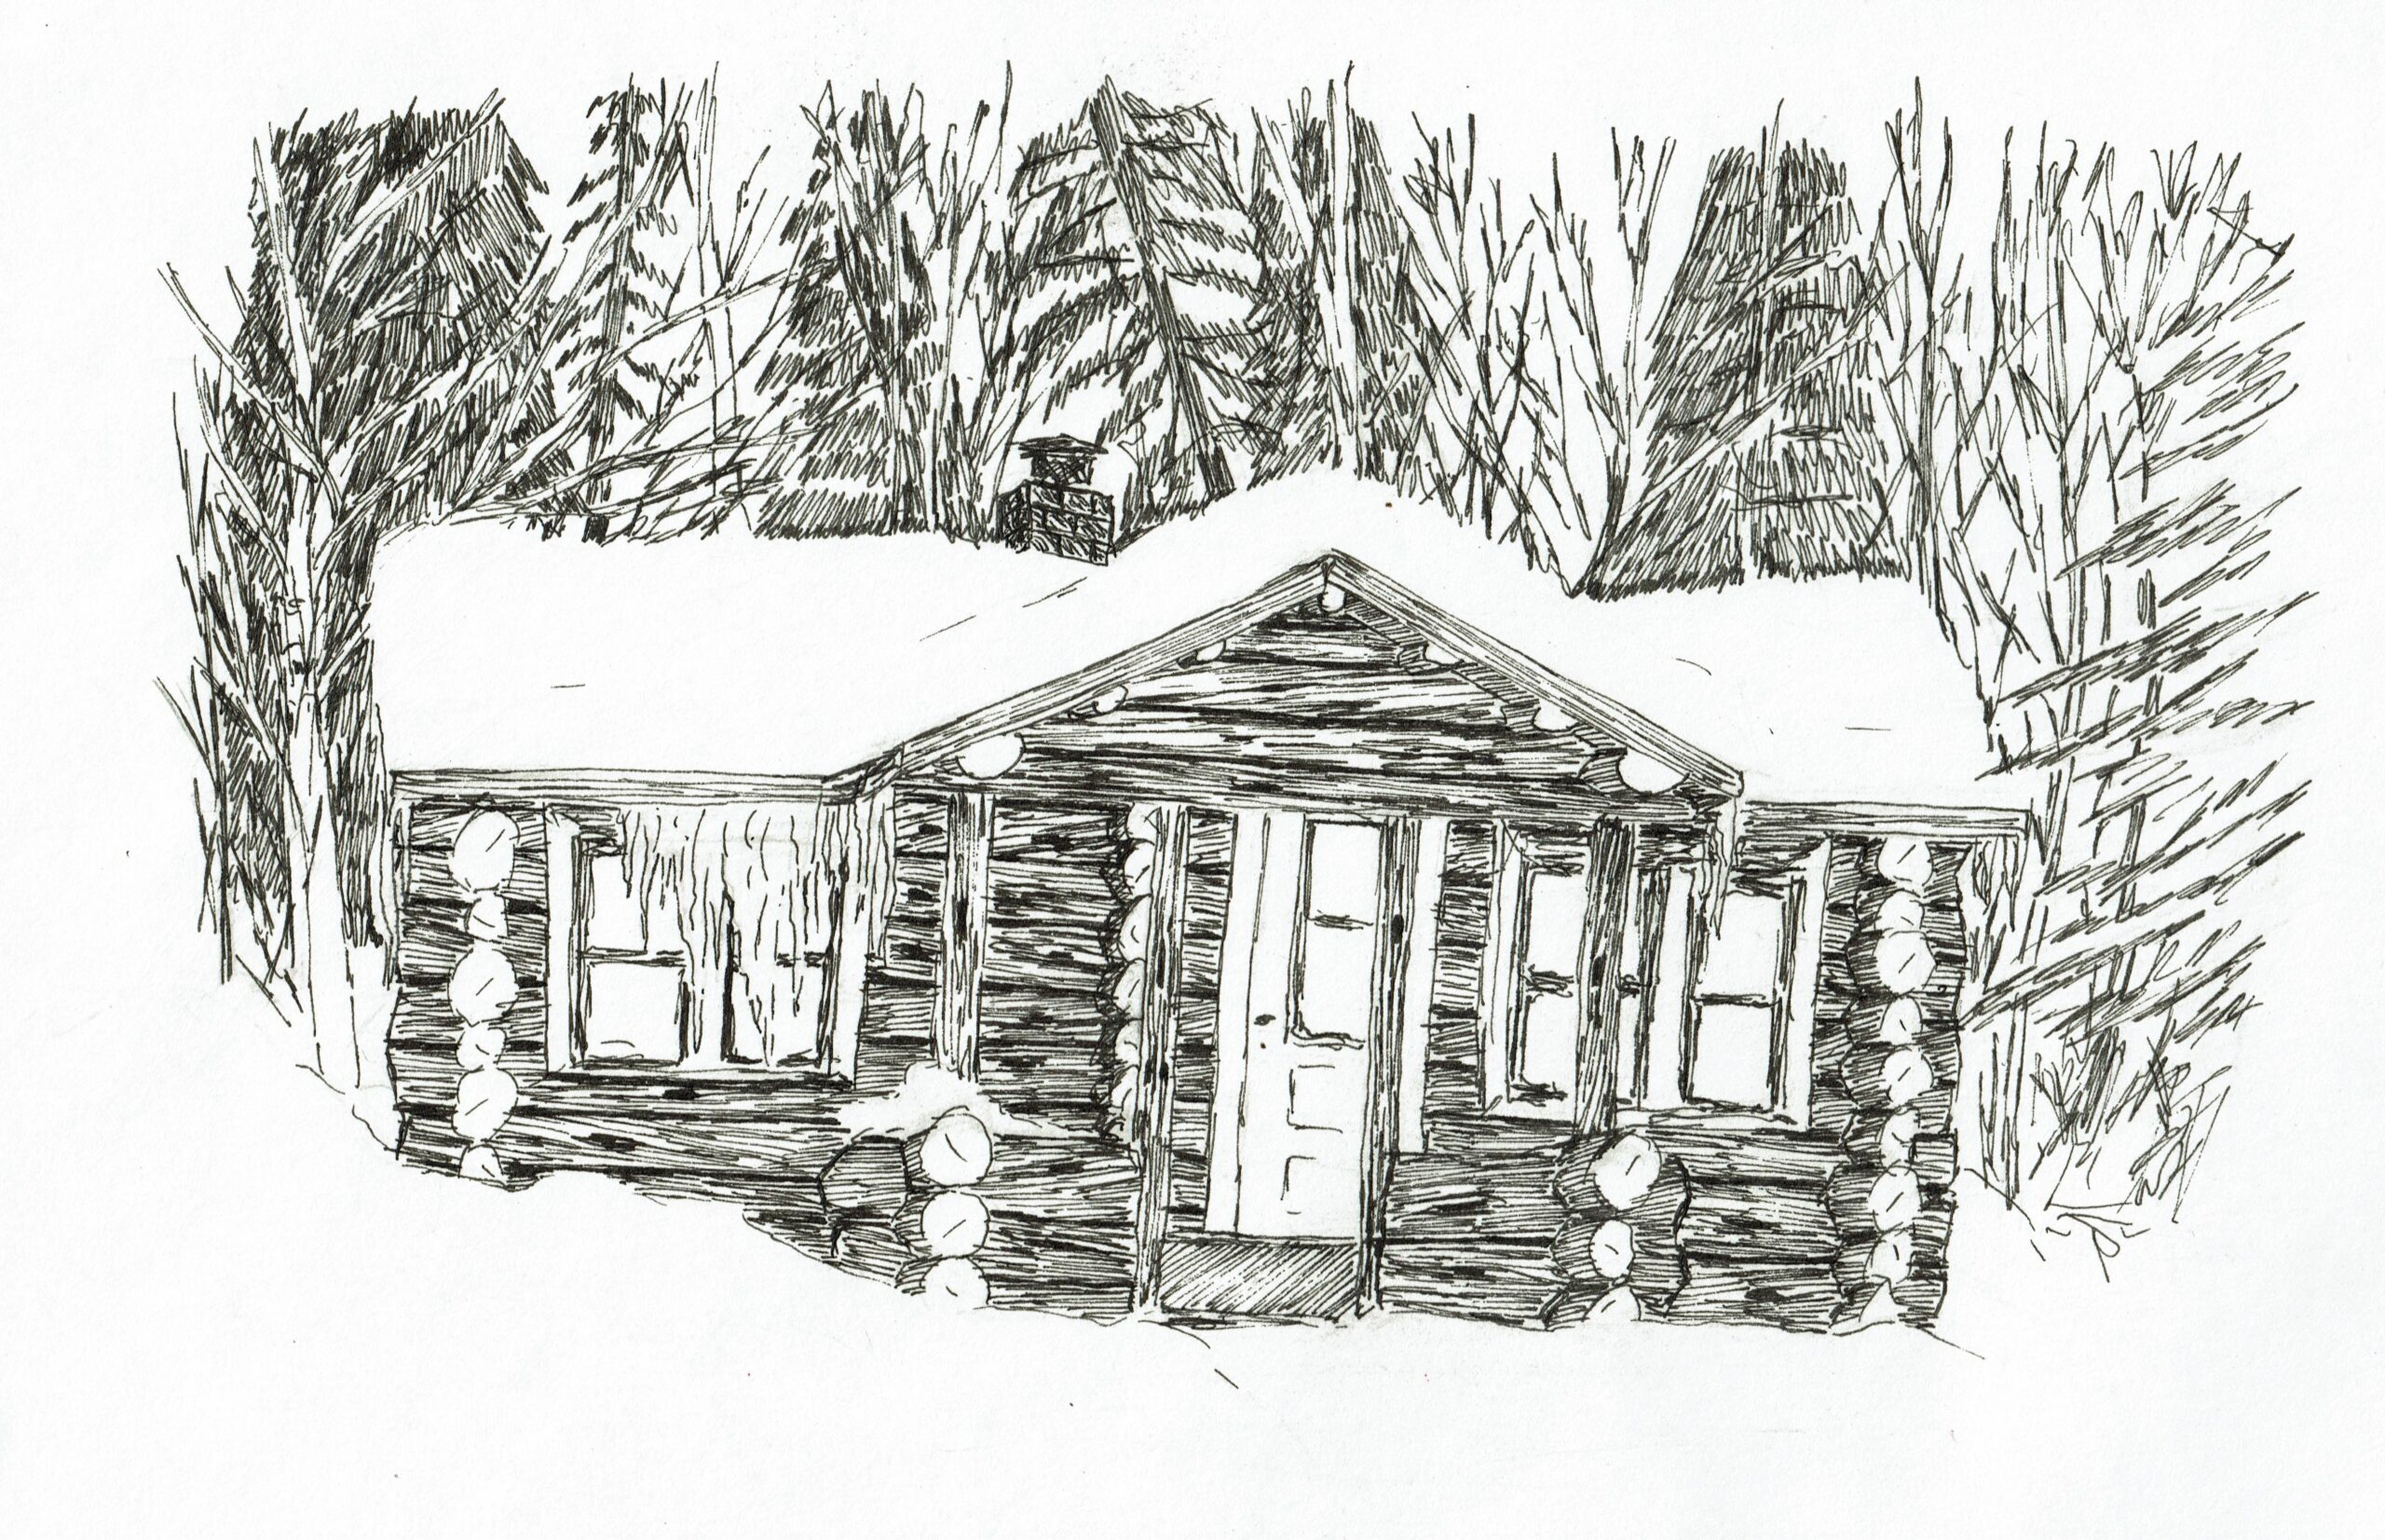 Buyck log cabin, ink drawing